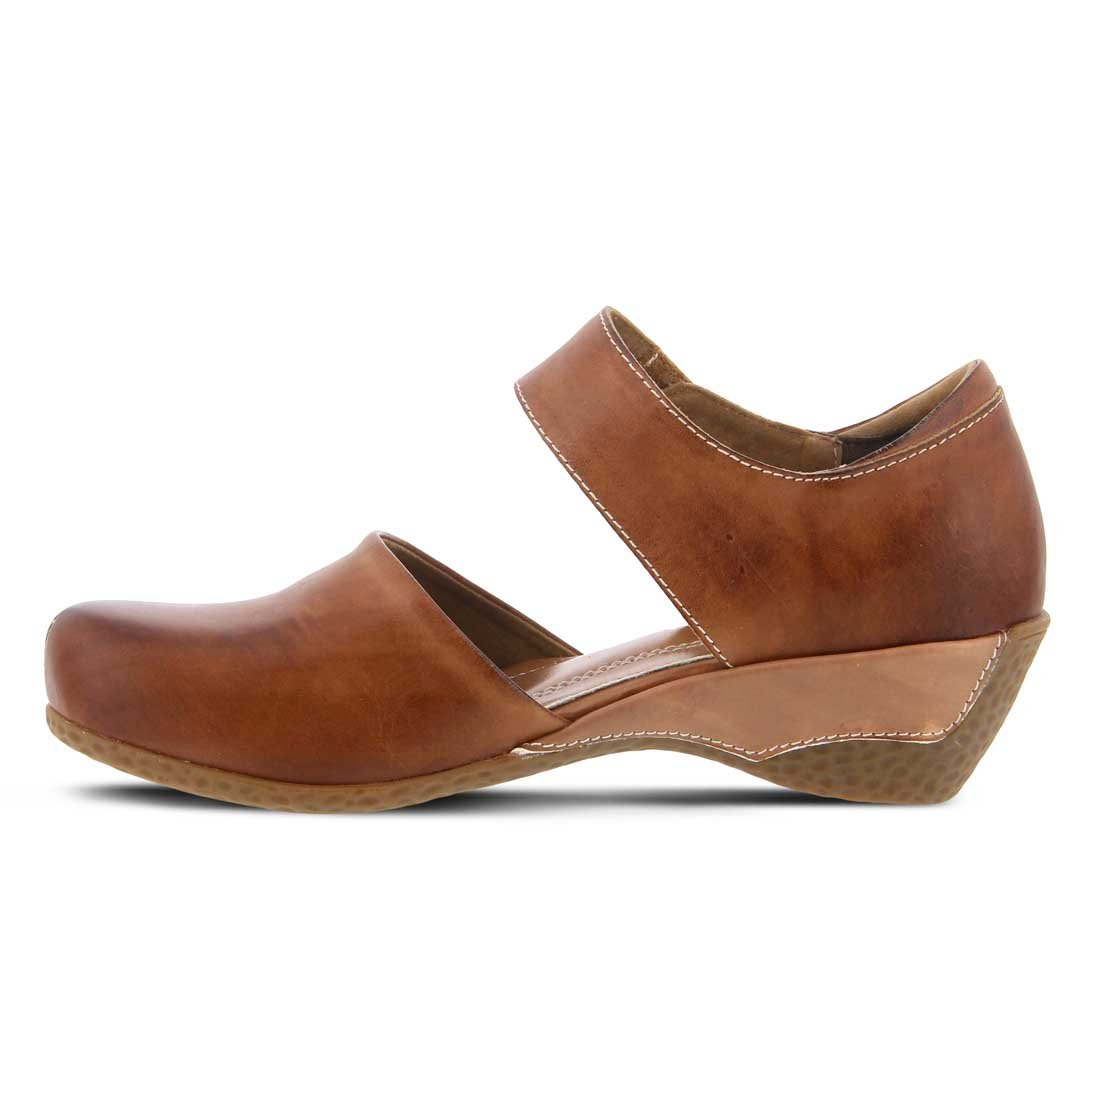 Spring Step Women's Gloss Mary Jane Shoe Brown by Spring Step (Image #2)